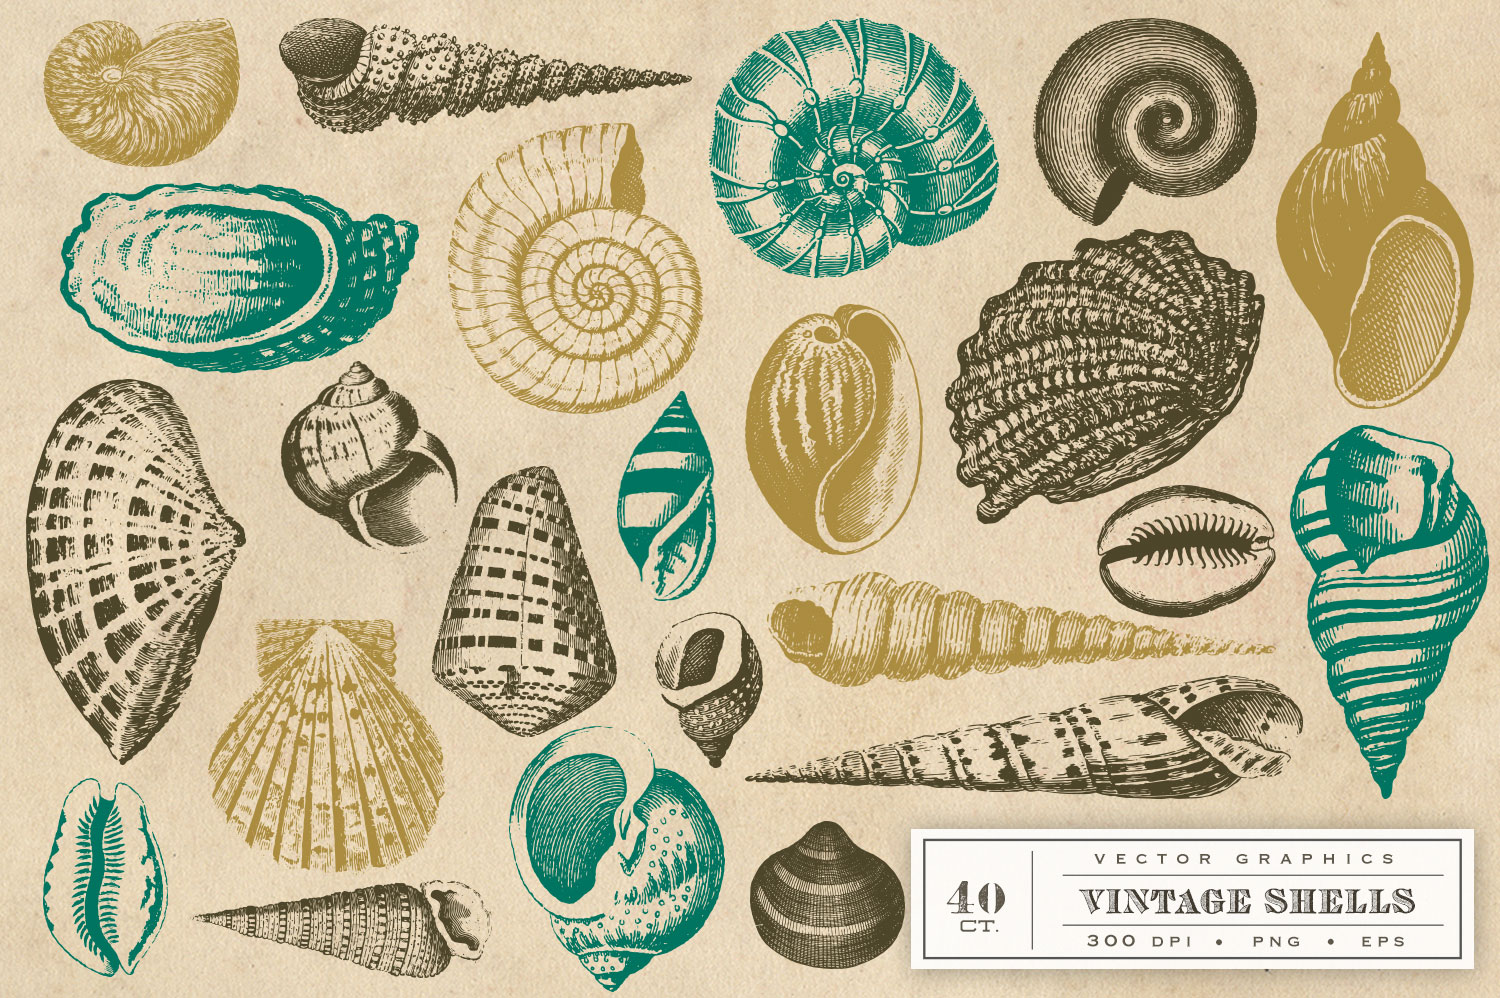 Vintage Shell Vector Graphics example image 2